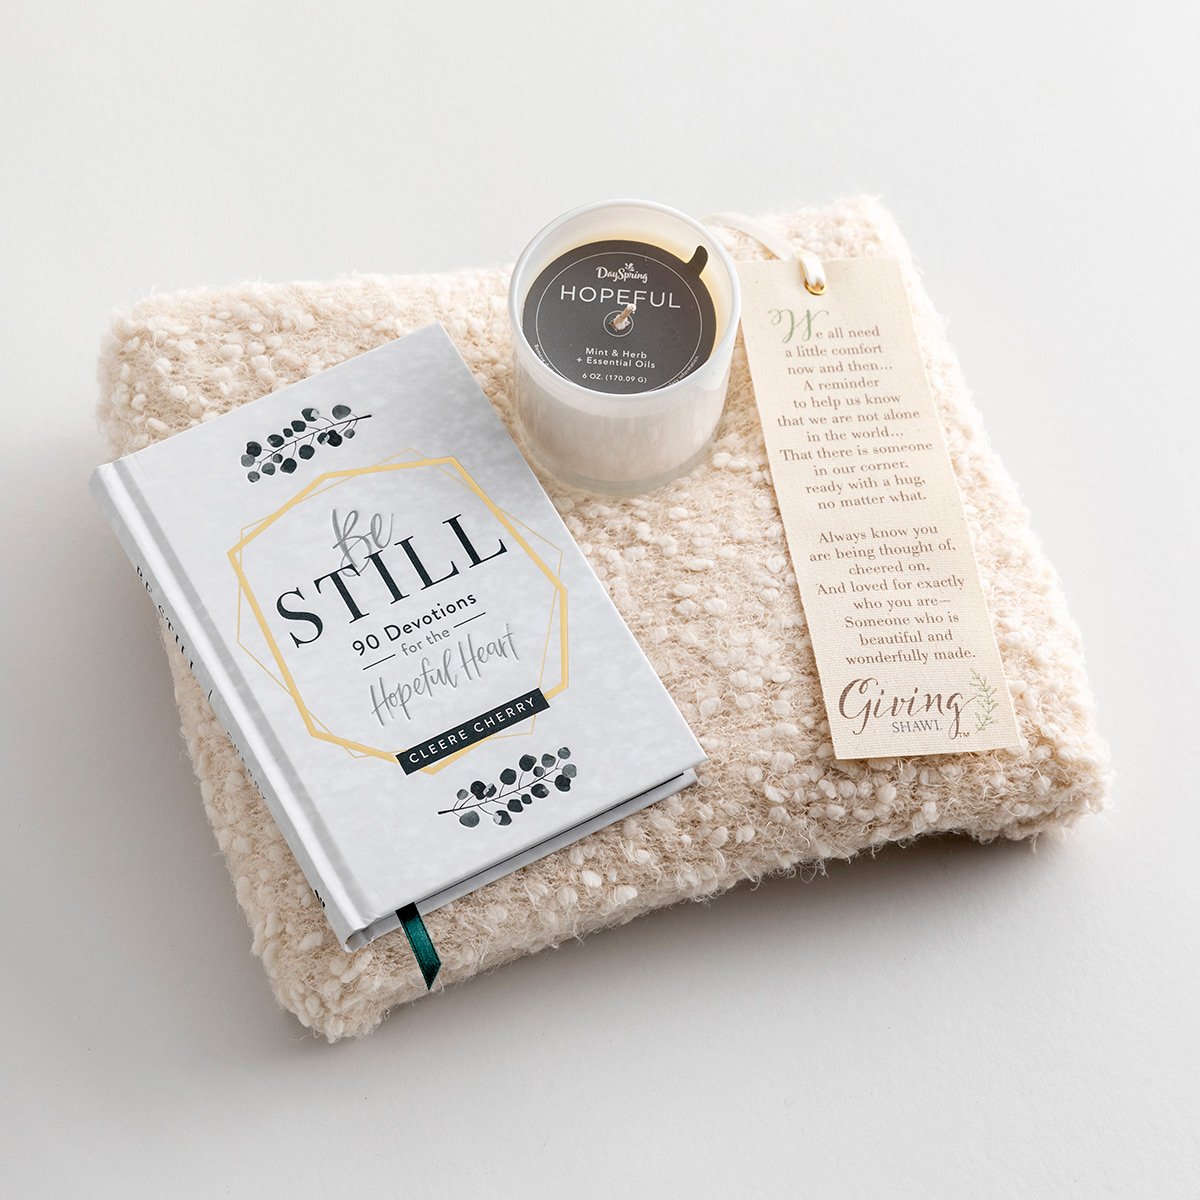 Giving Shawl, Be Still Devotional & Hopeful Candle - Quiet Time Gift Set